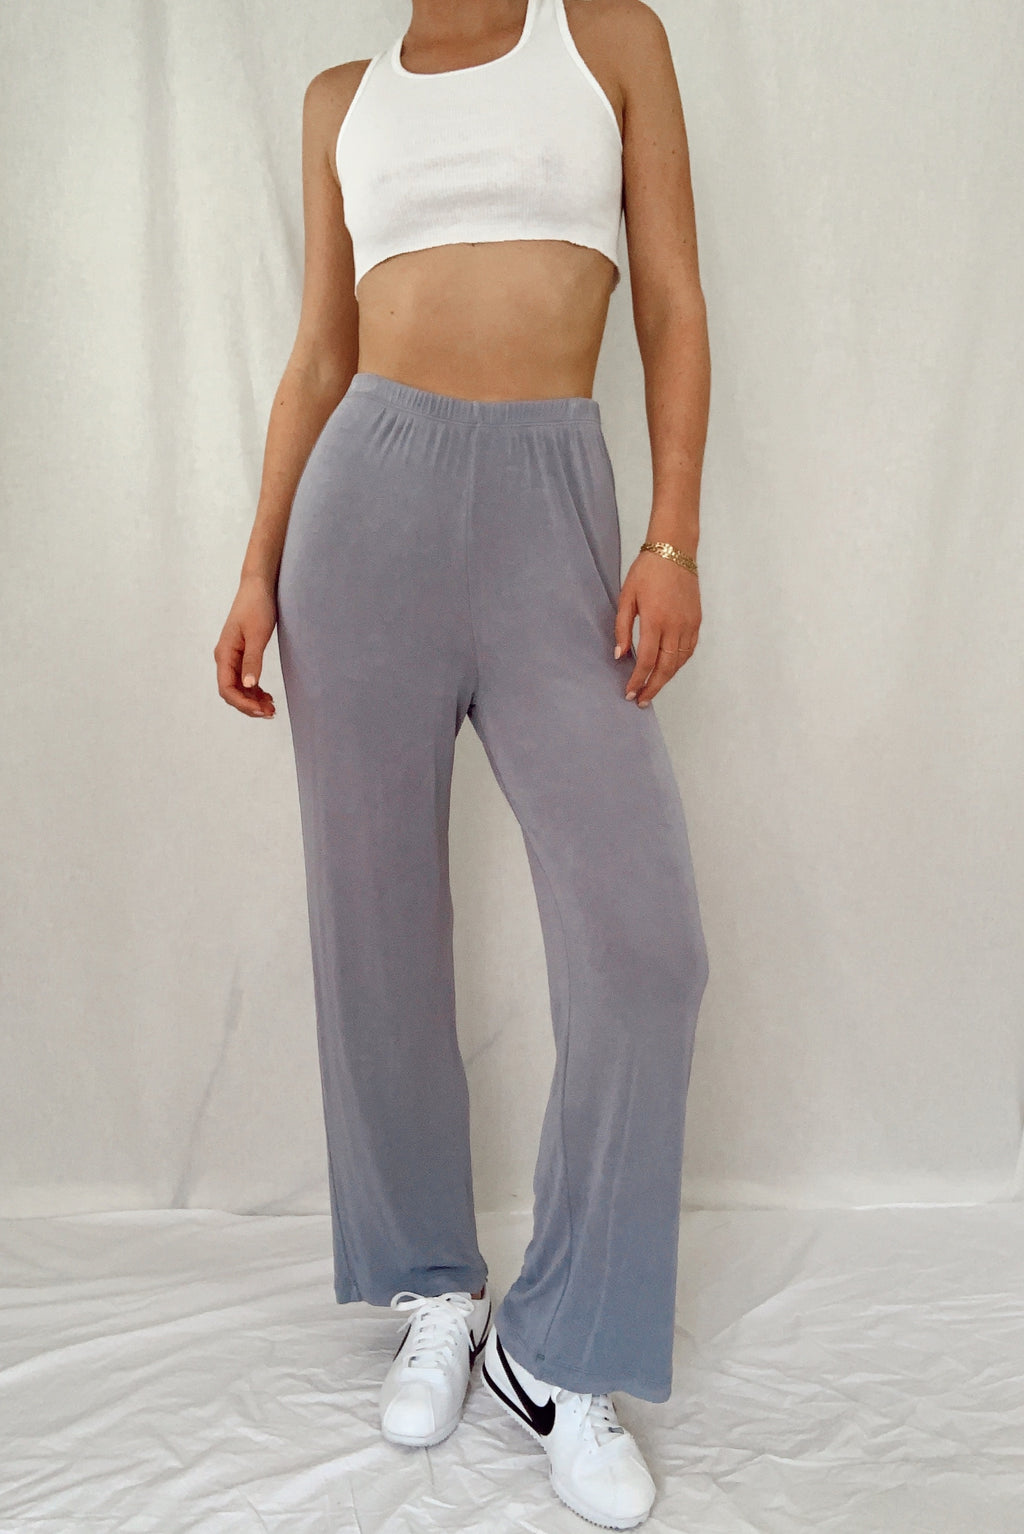 Sky Blue Silky Lounge Pants